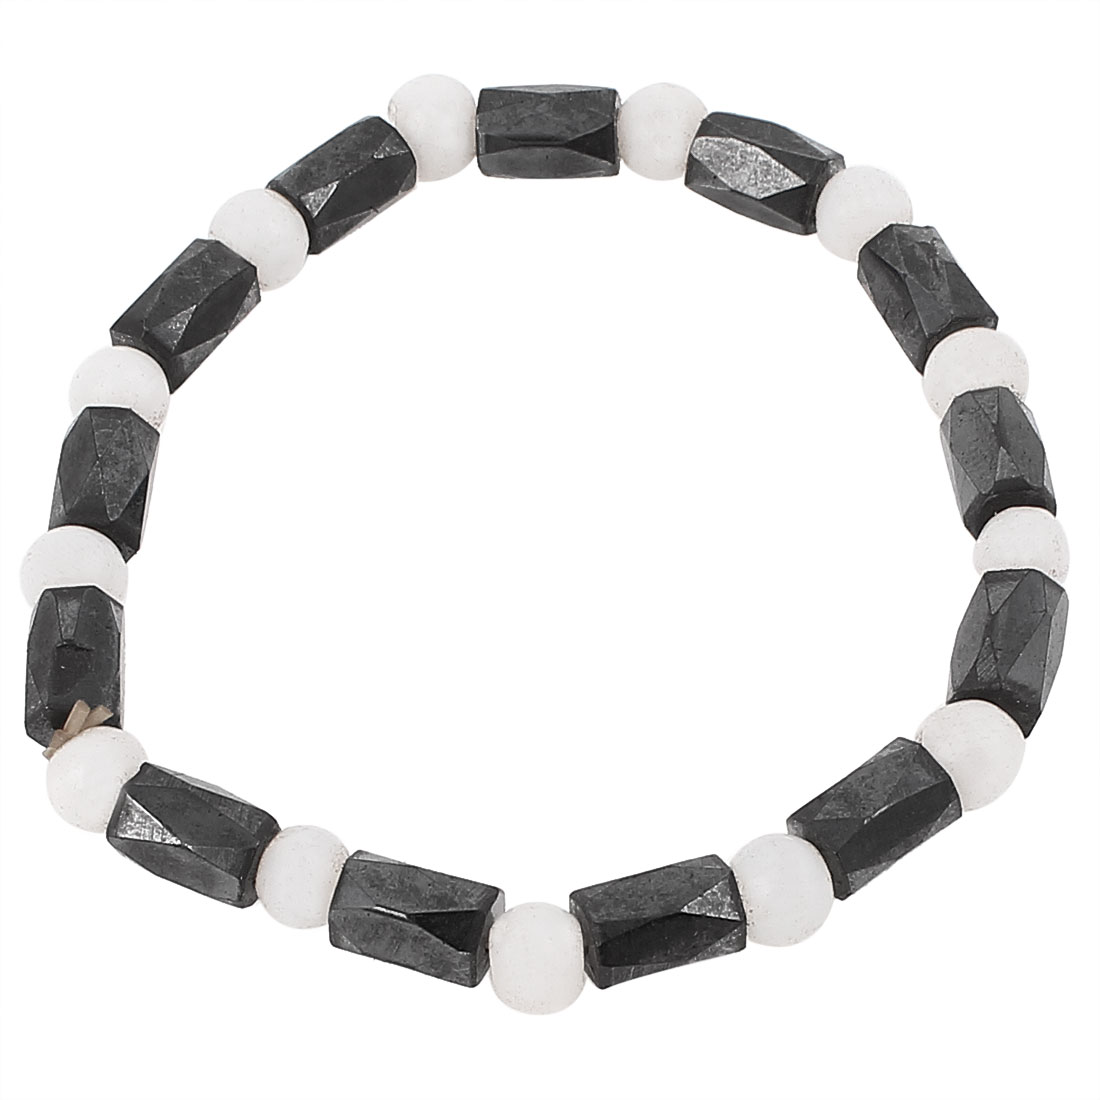 Lady Round Plastic Beads Elastic Wrist Magnetic Bracelet Bangle Black White